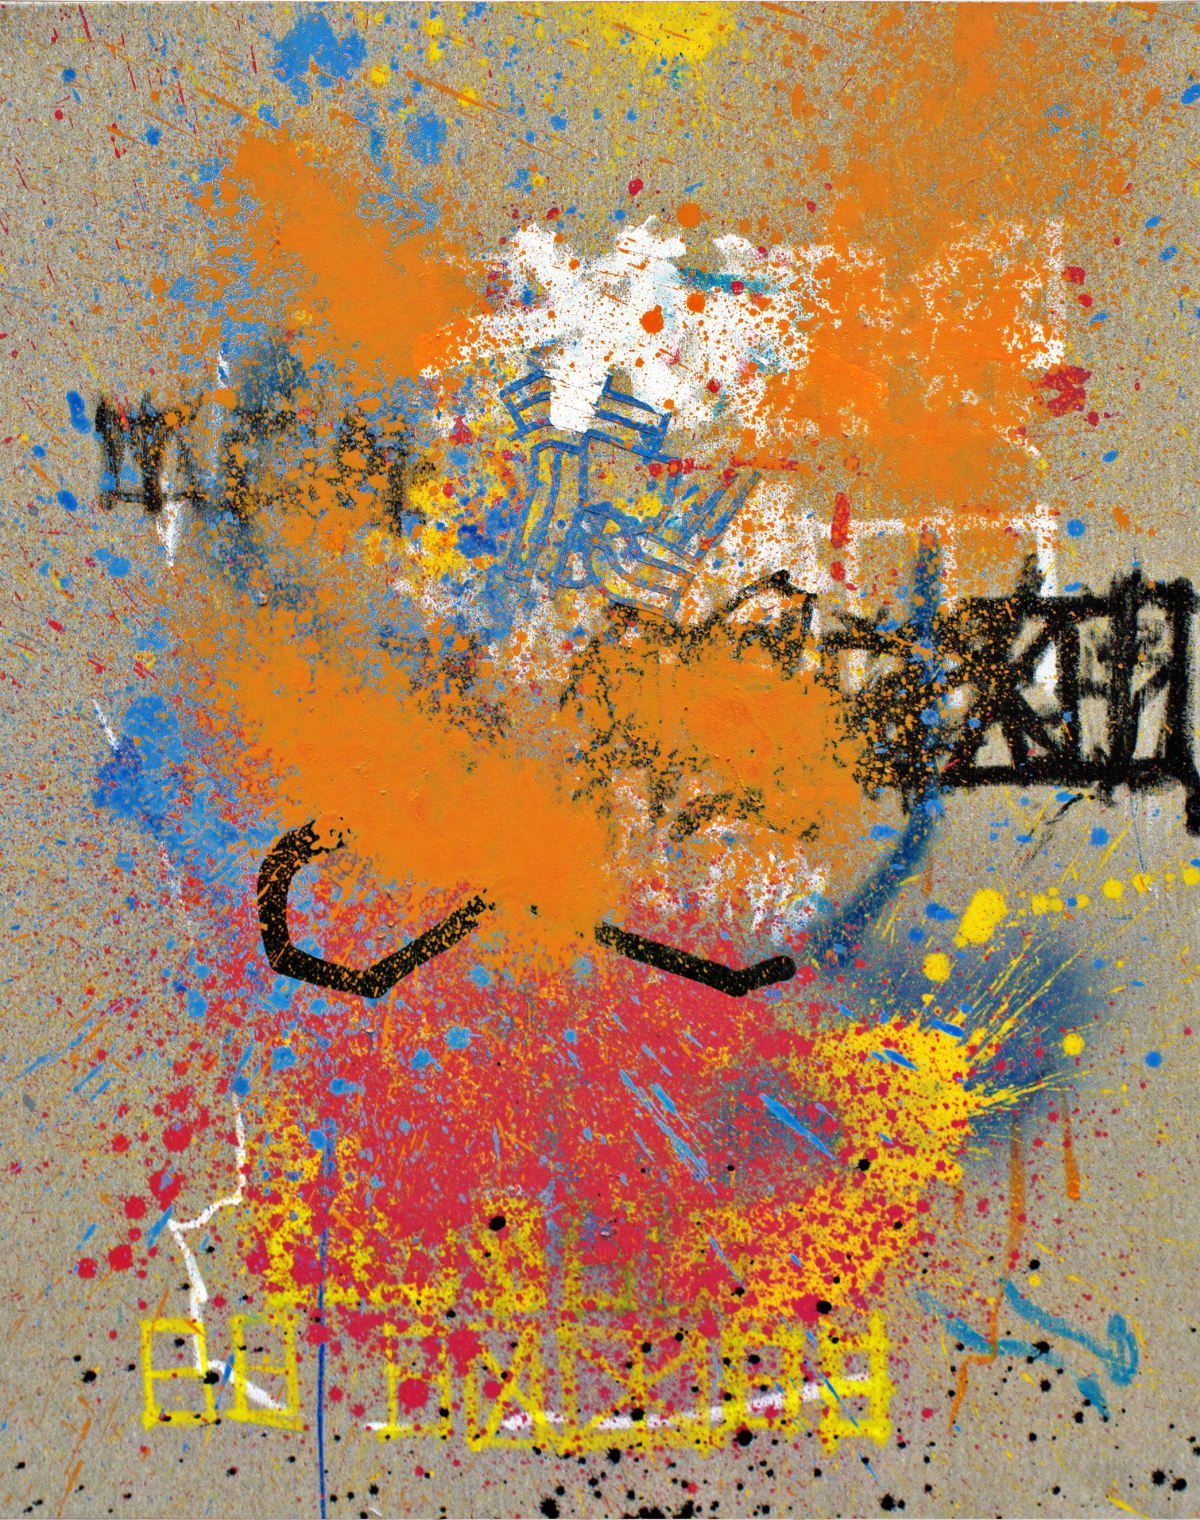 Danil Manzhos Number 11, 2018 Acrylic Paint compressed in fire extinguisher on Canvas 100 x 80 cm 39 1/2 x 31 1/2 in